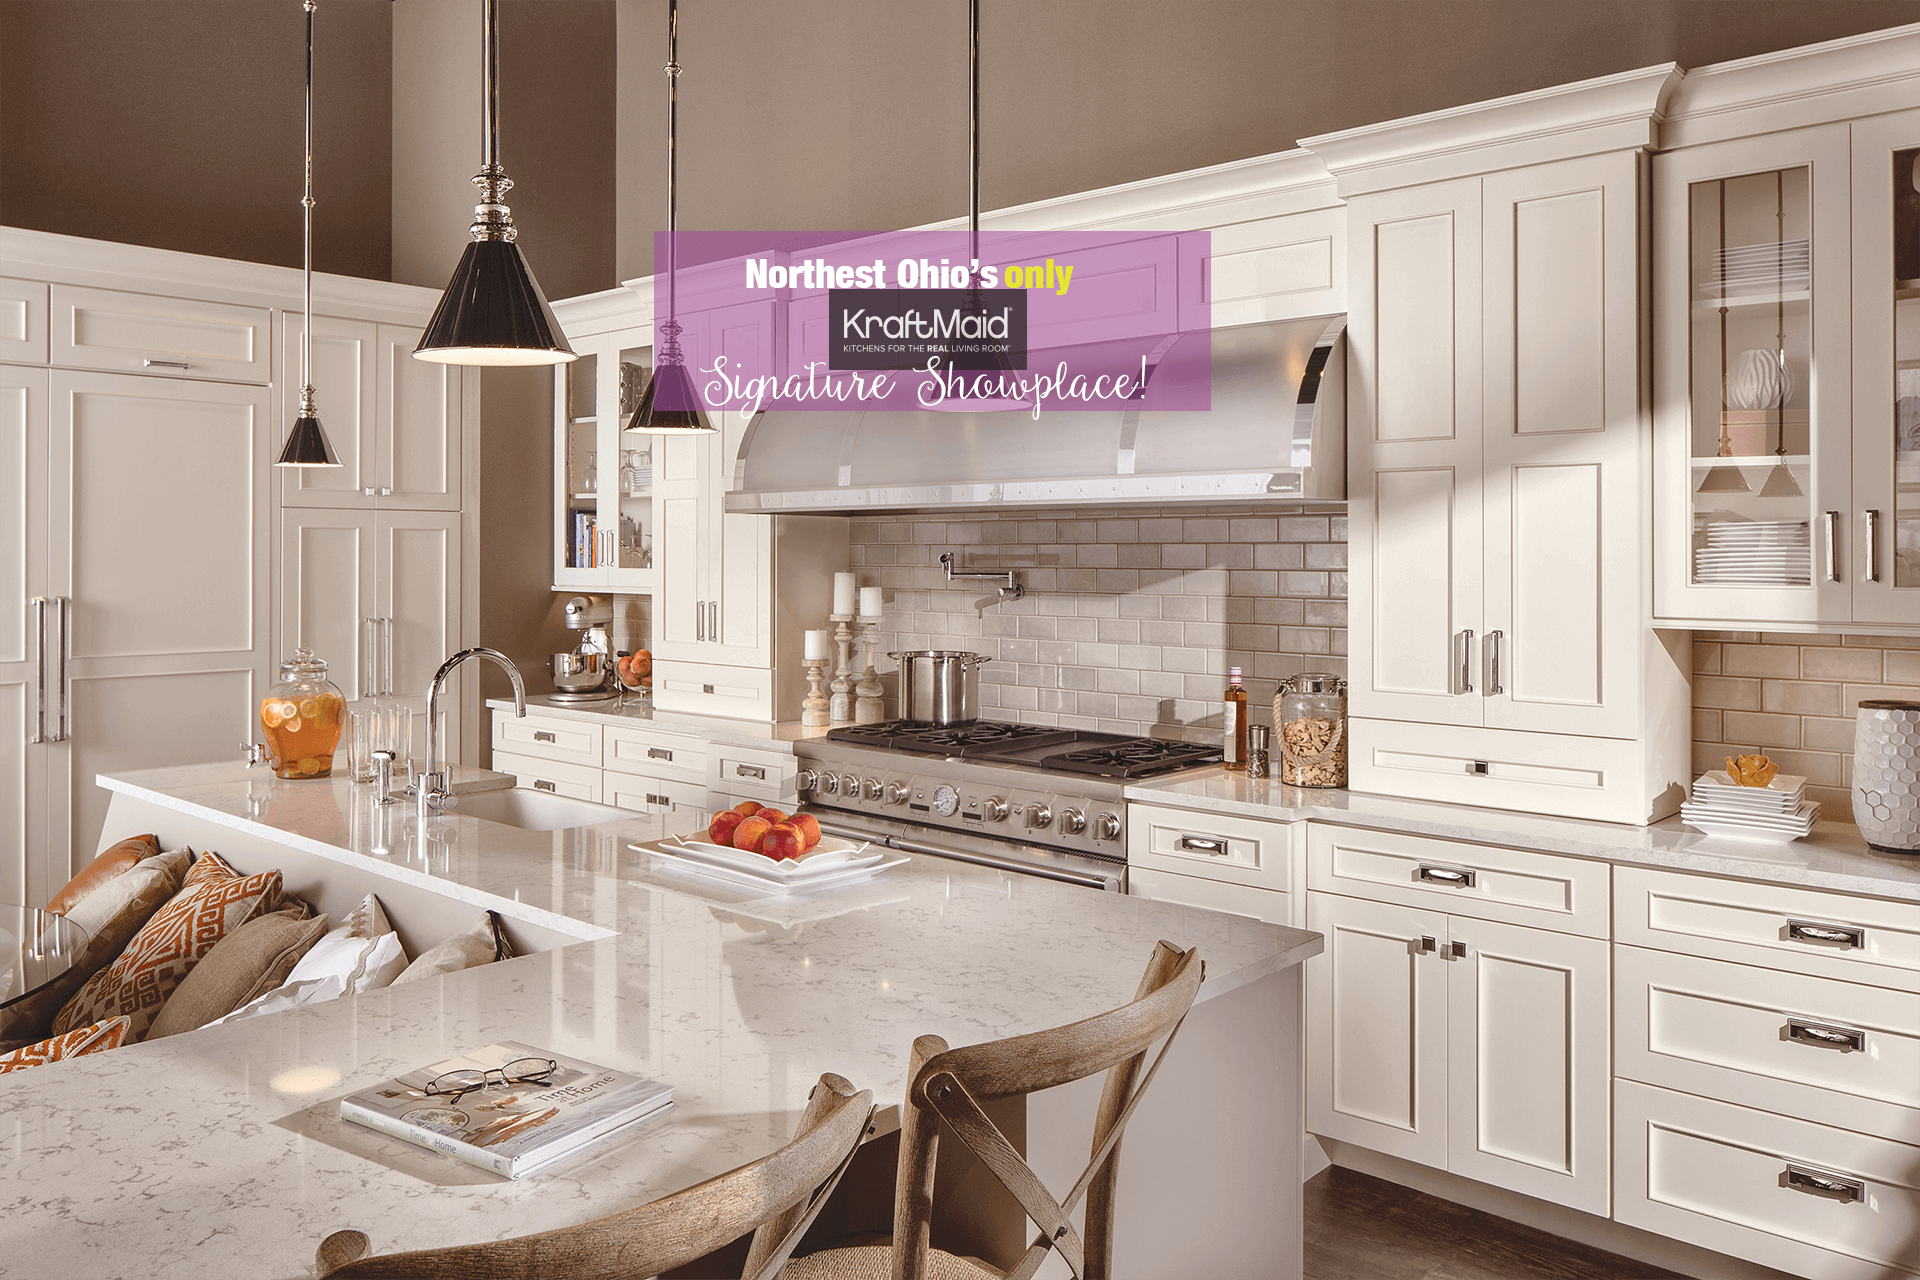 White kitchen cabinets available from Lumberjack's Kitchen and Baths, serving Cleveland, Akron, Canton and all of northeast Ohio in new kitchen design, kitchen updates and kitchen cabinetry.